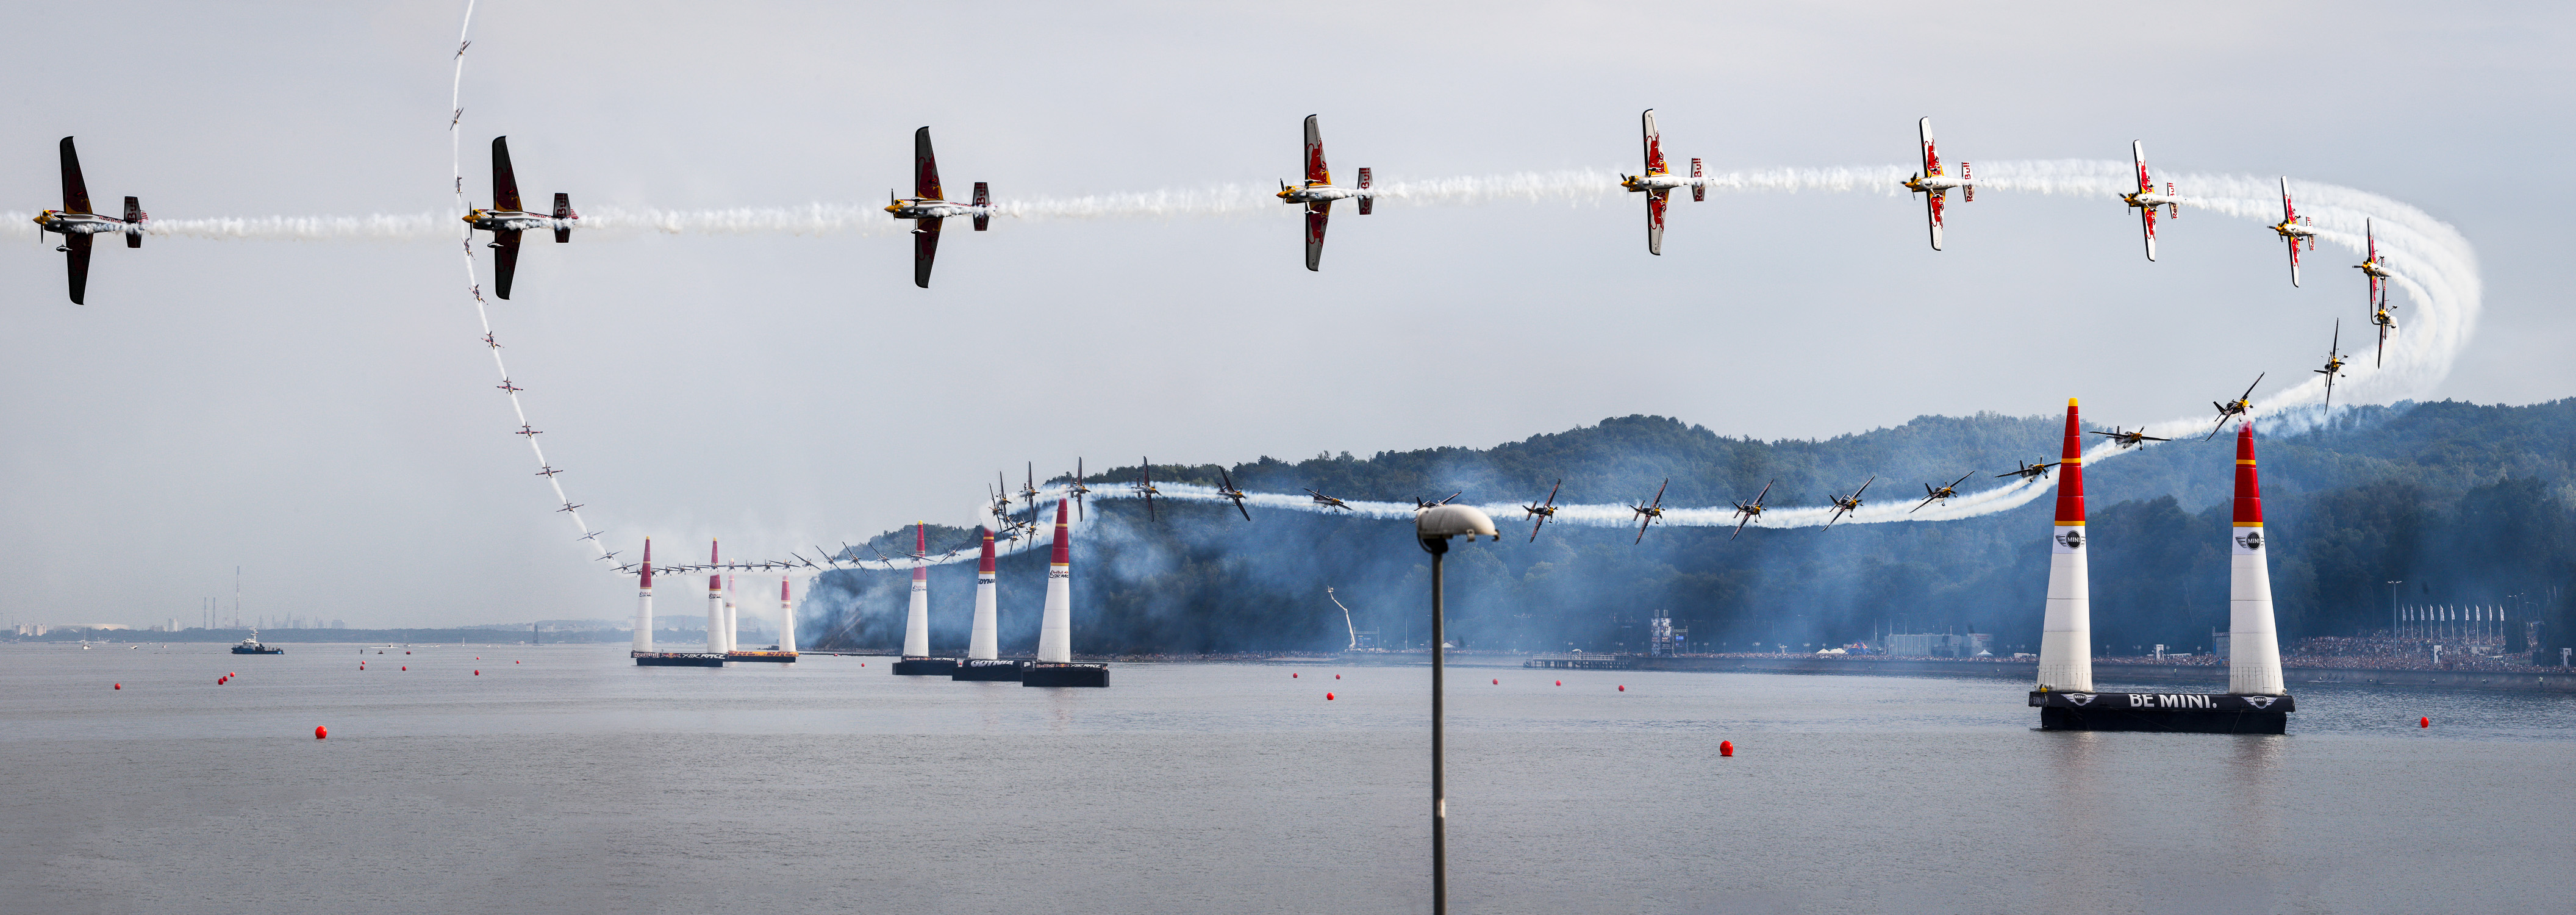 Red Bull Airrace Gdynia 2015